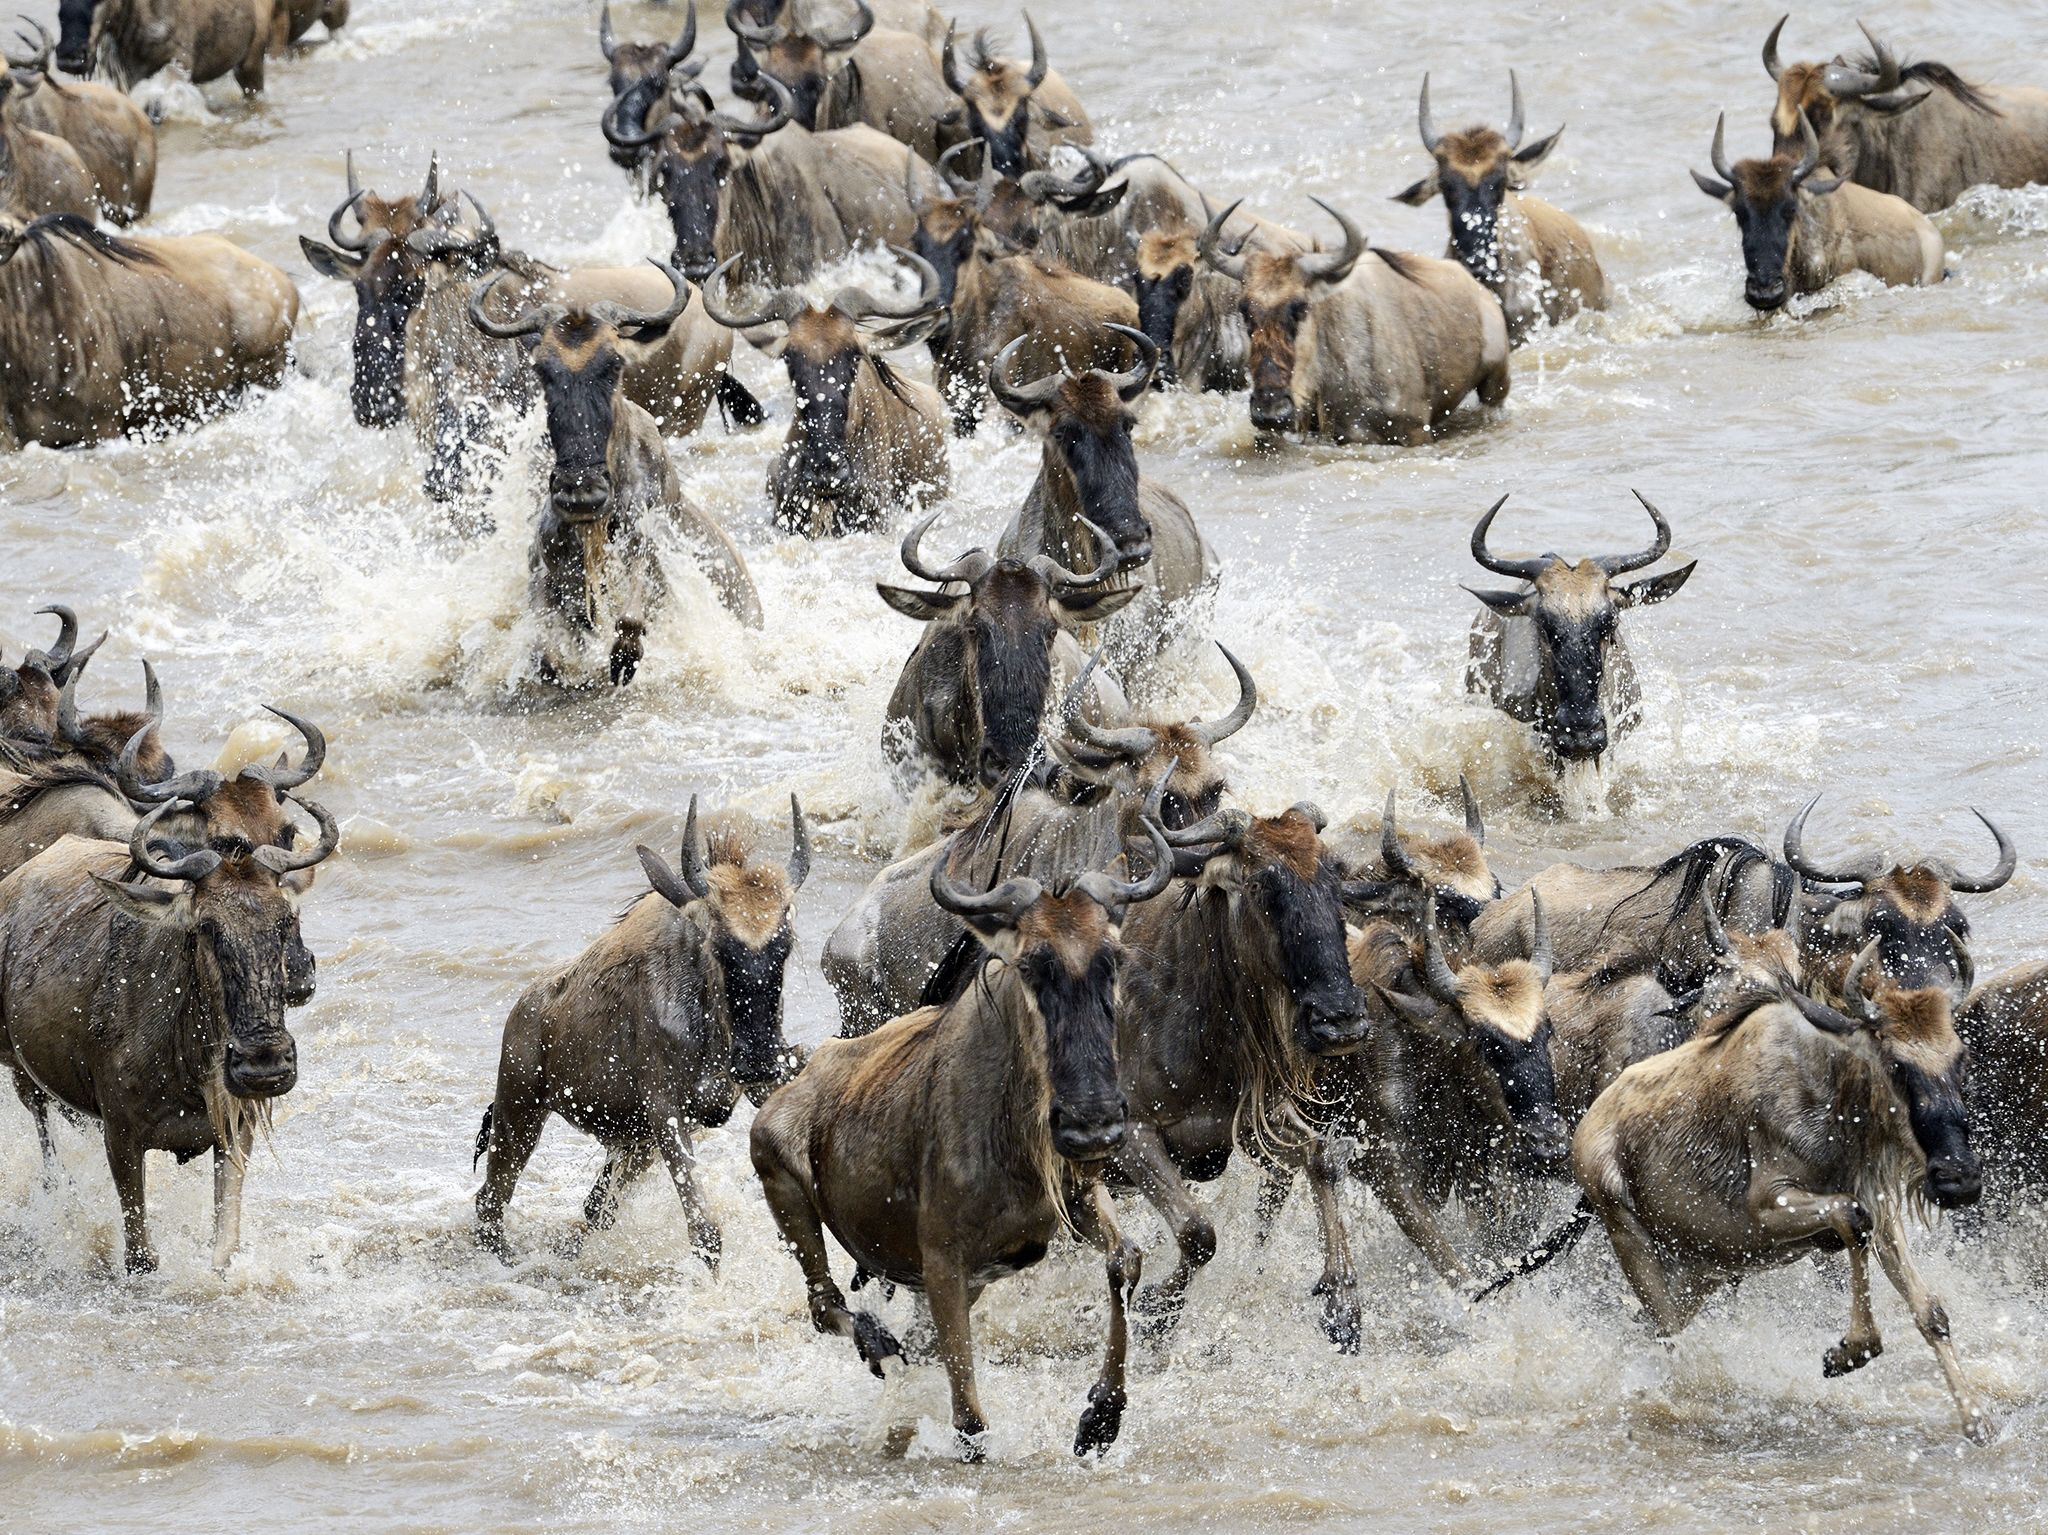 Tanzania:  Wildebeest migration in Serengeti National Park. This image is from Inside The Pack. [Foto del giorno - settembre 2017]